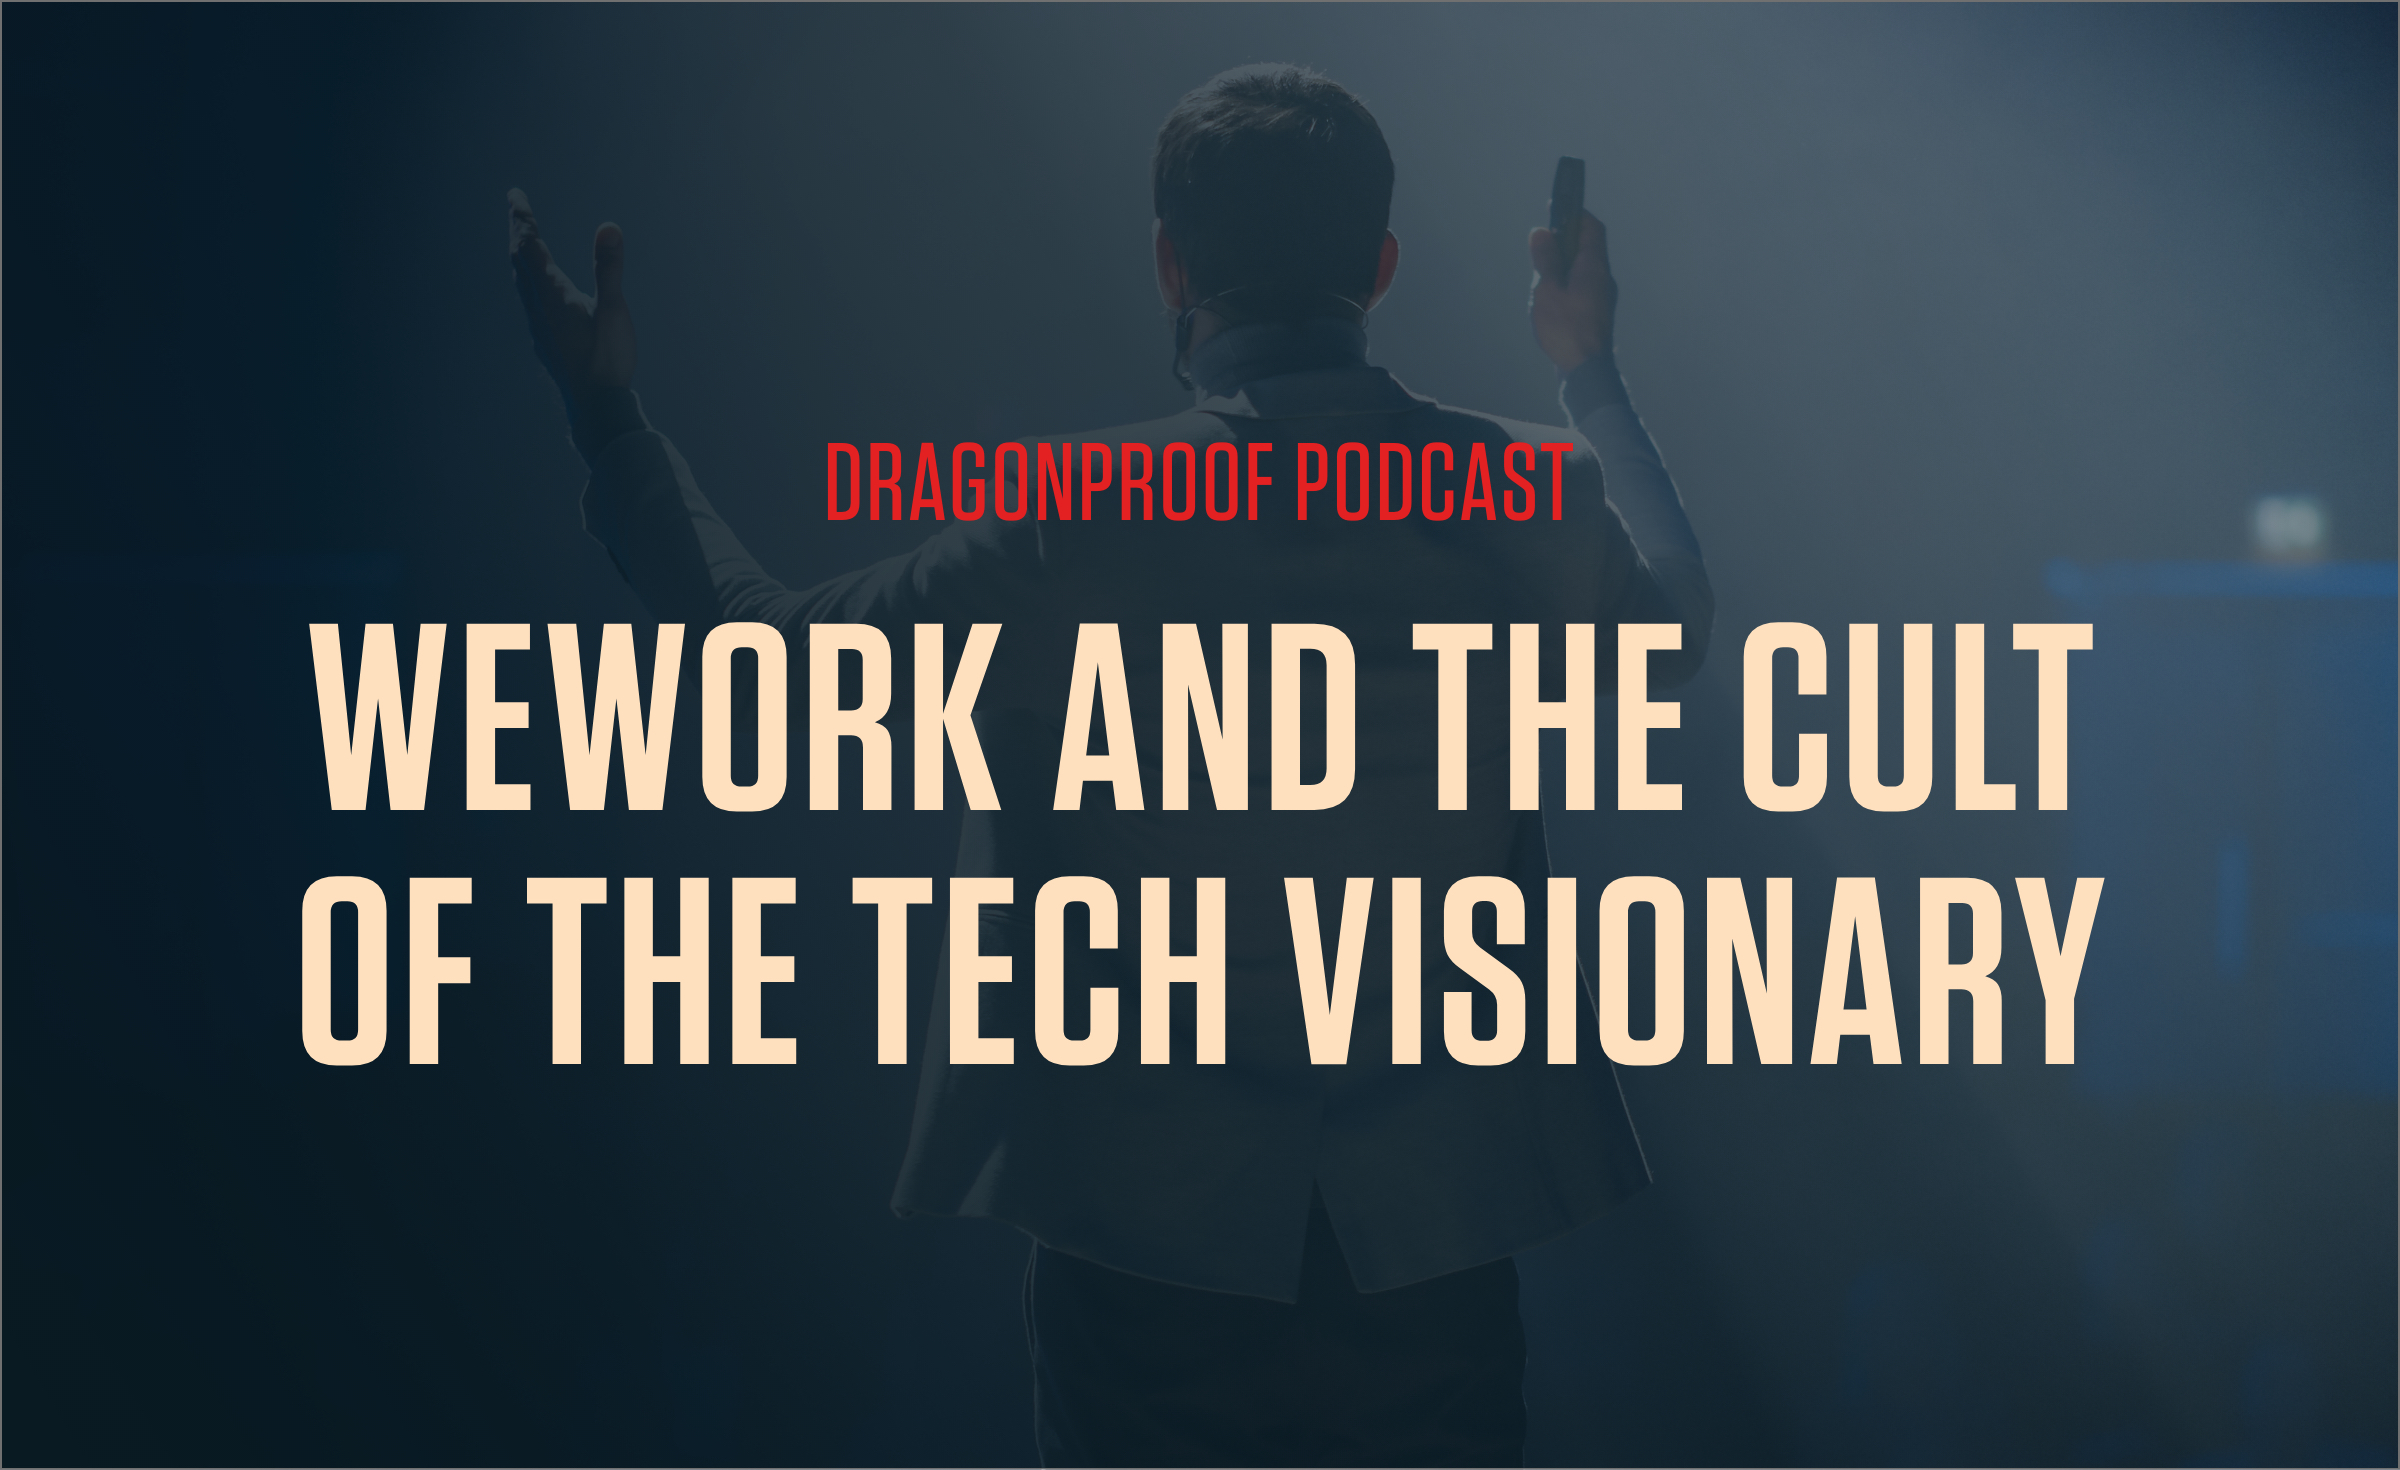 Dragonproof Podcast Title Card - WeWork and The Cult of the Tech Visionary